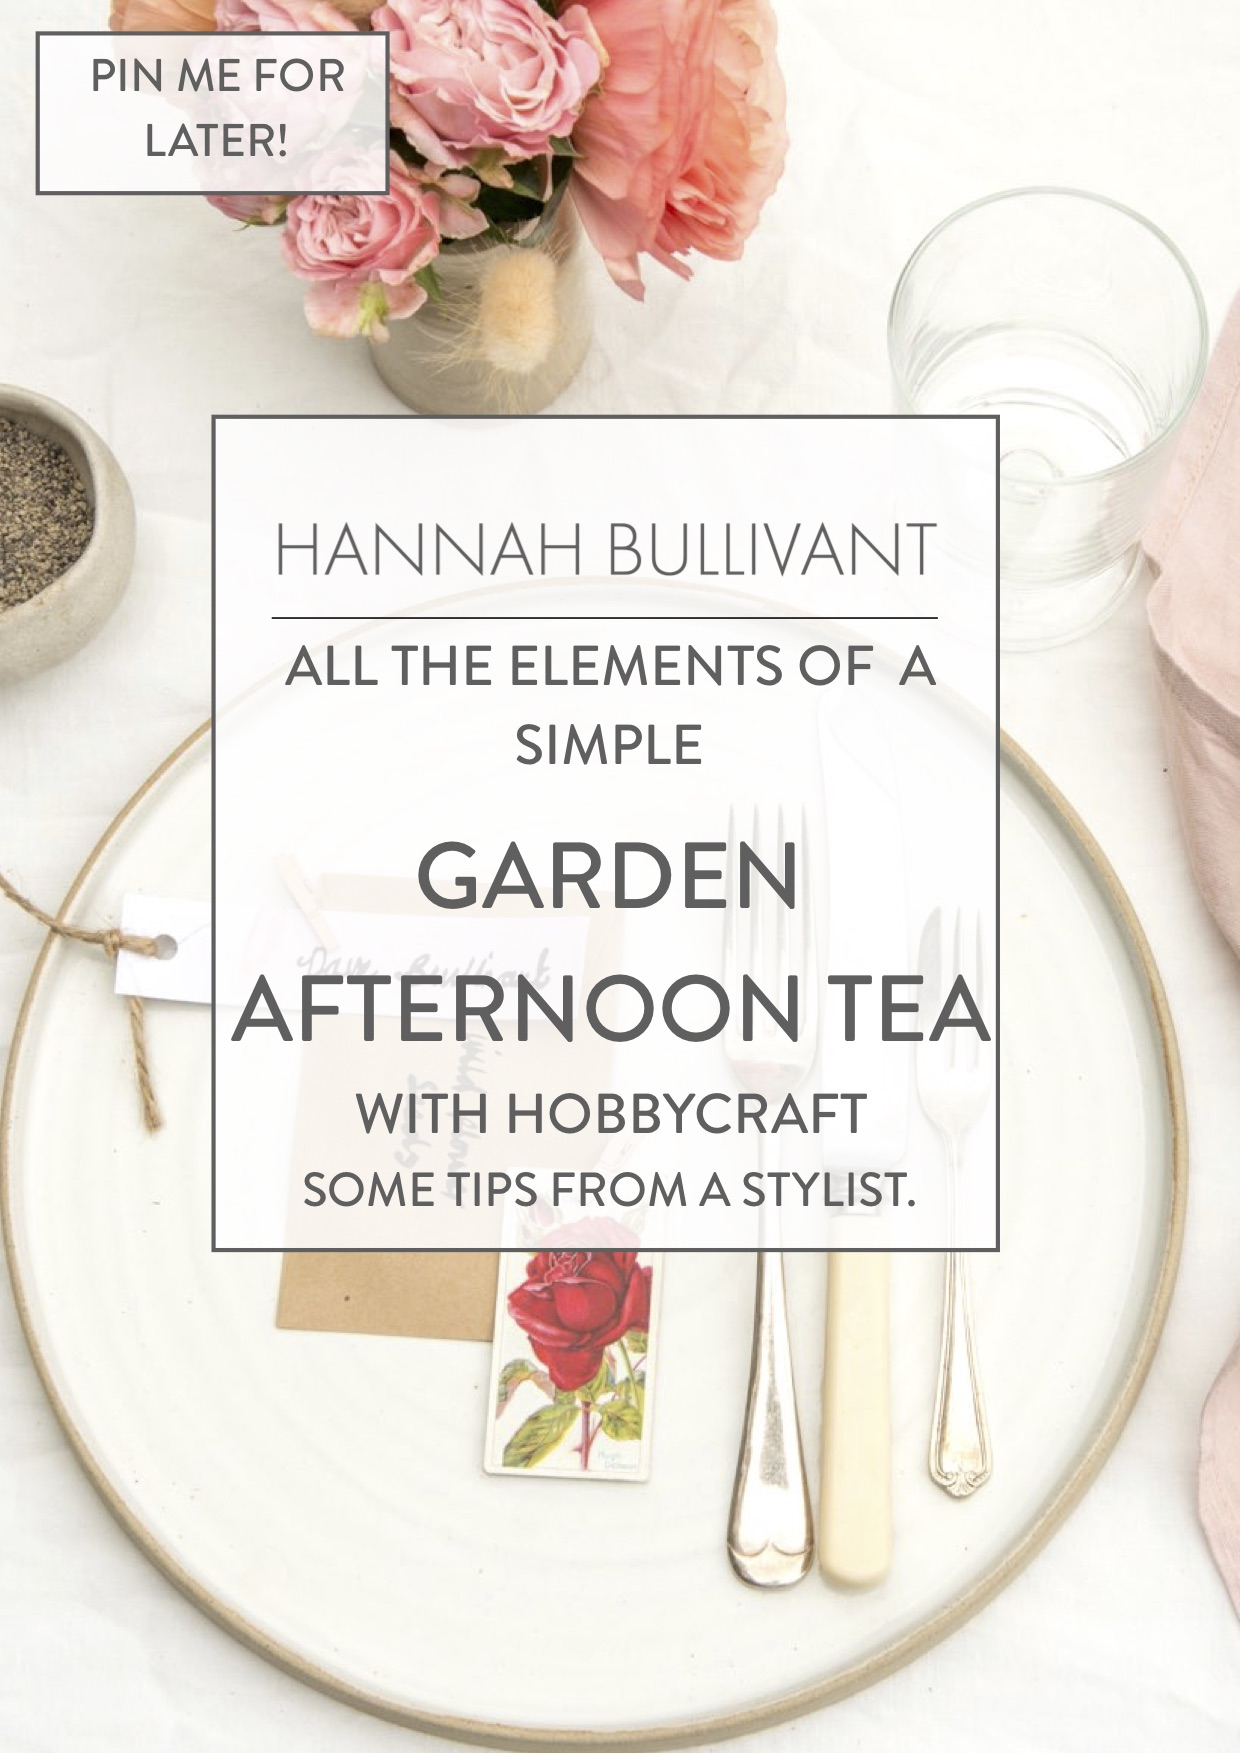 Stylist tips for hosting a garden afternoon tea